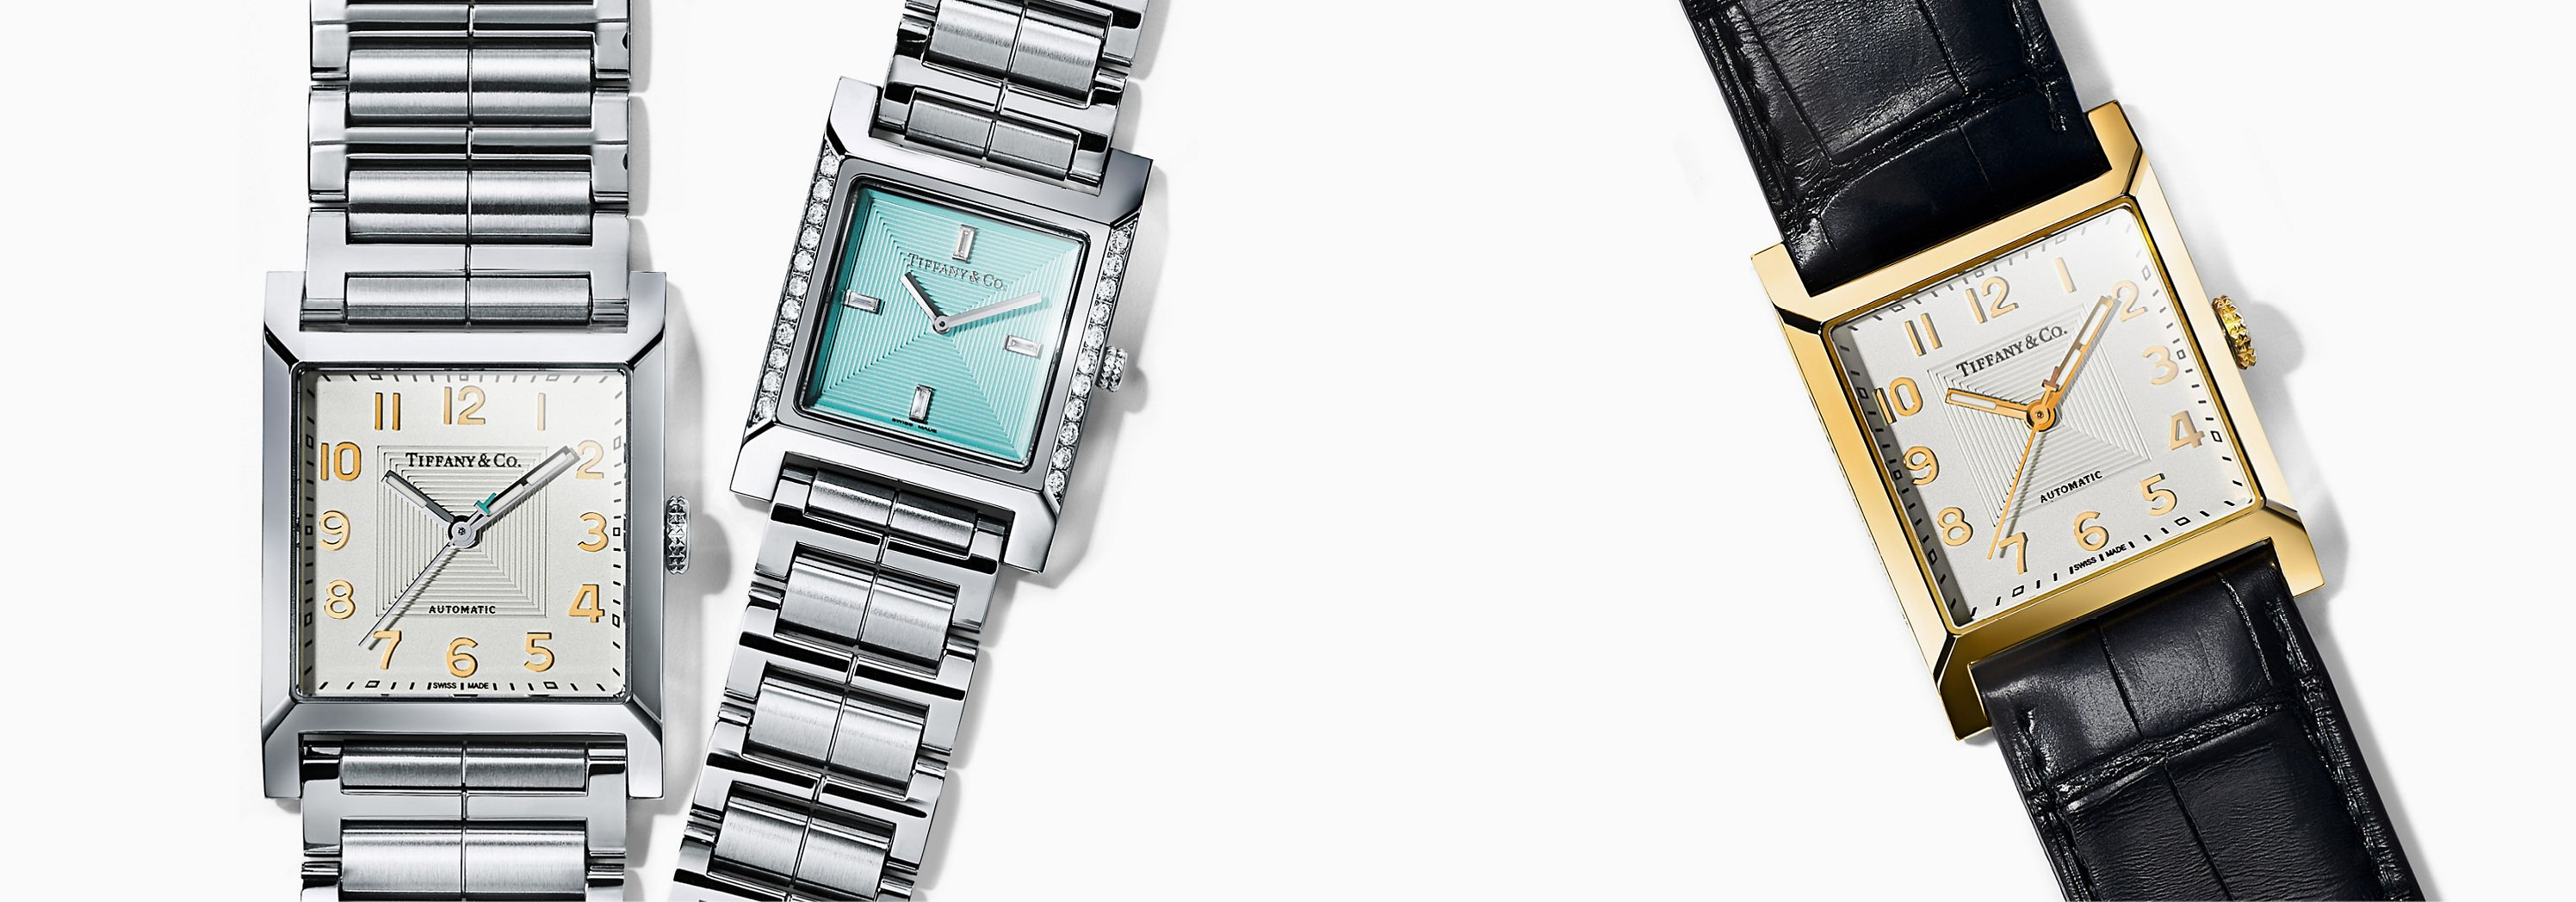 Tiffany 1837 Makers Watches